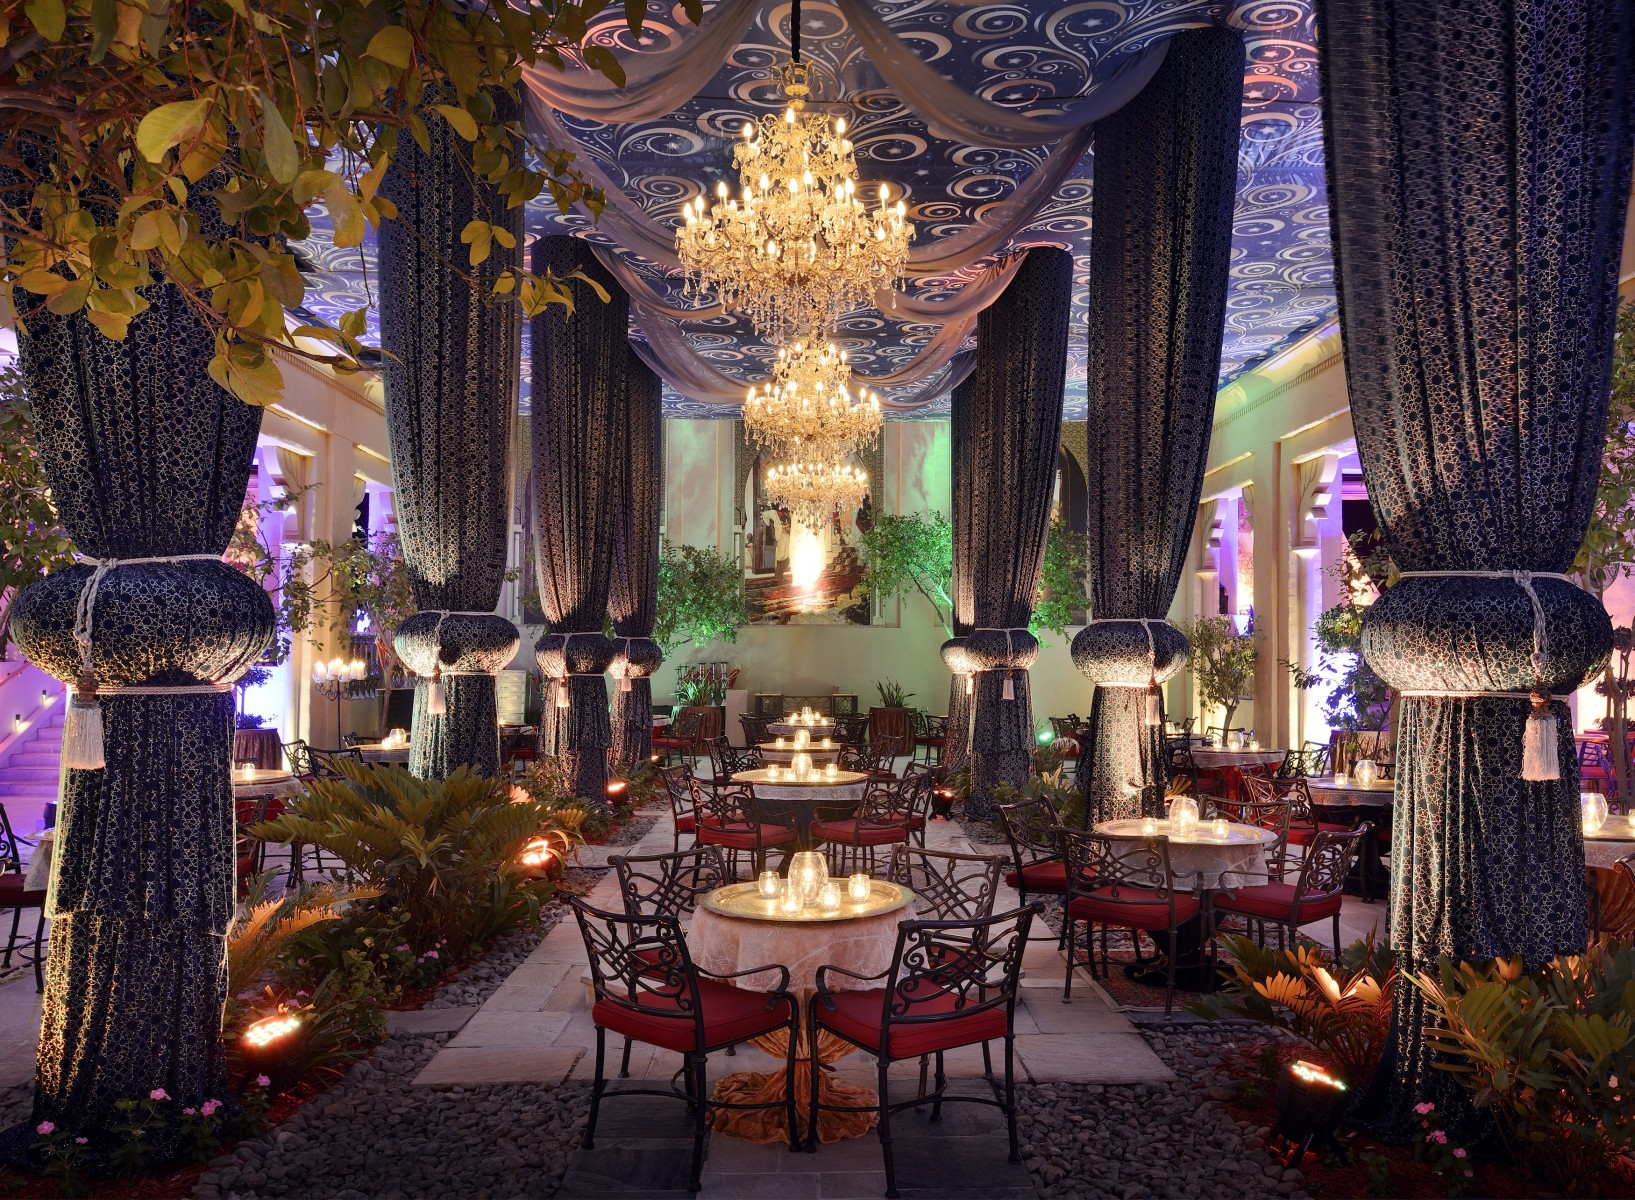 Ramadan Cafe, The Palace Courtyard, One&Only Royal Mirage, Dubai (4)